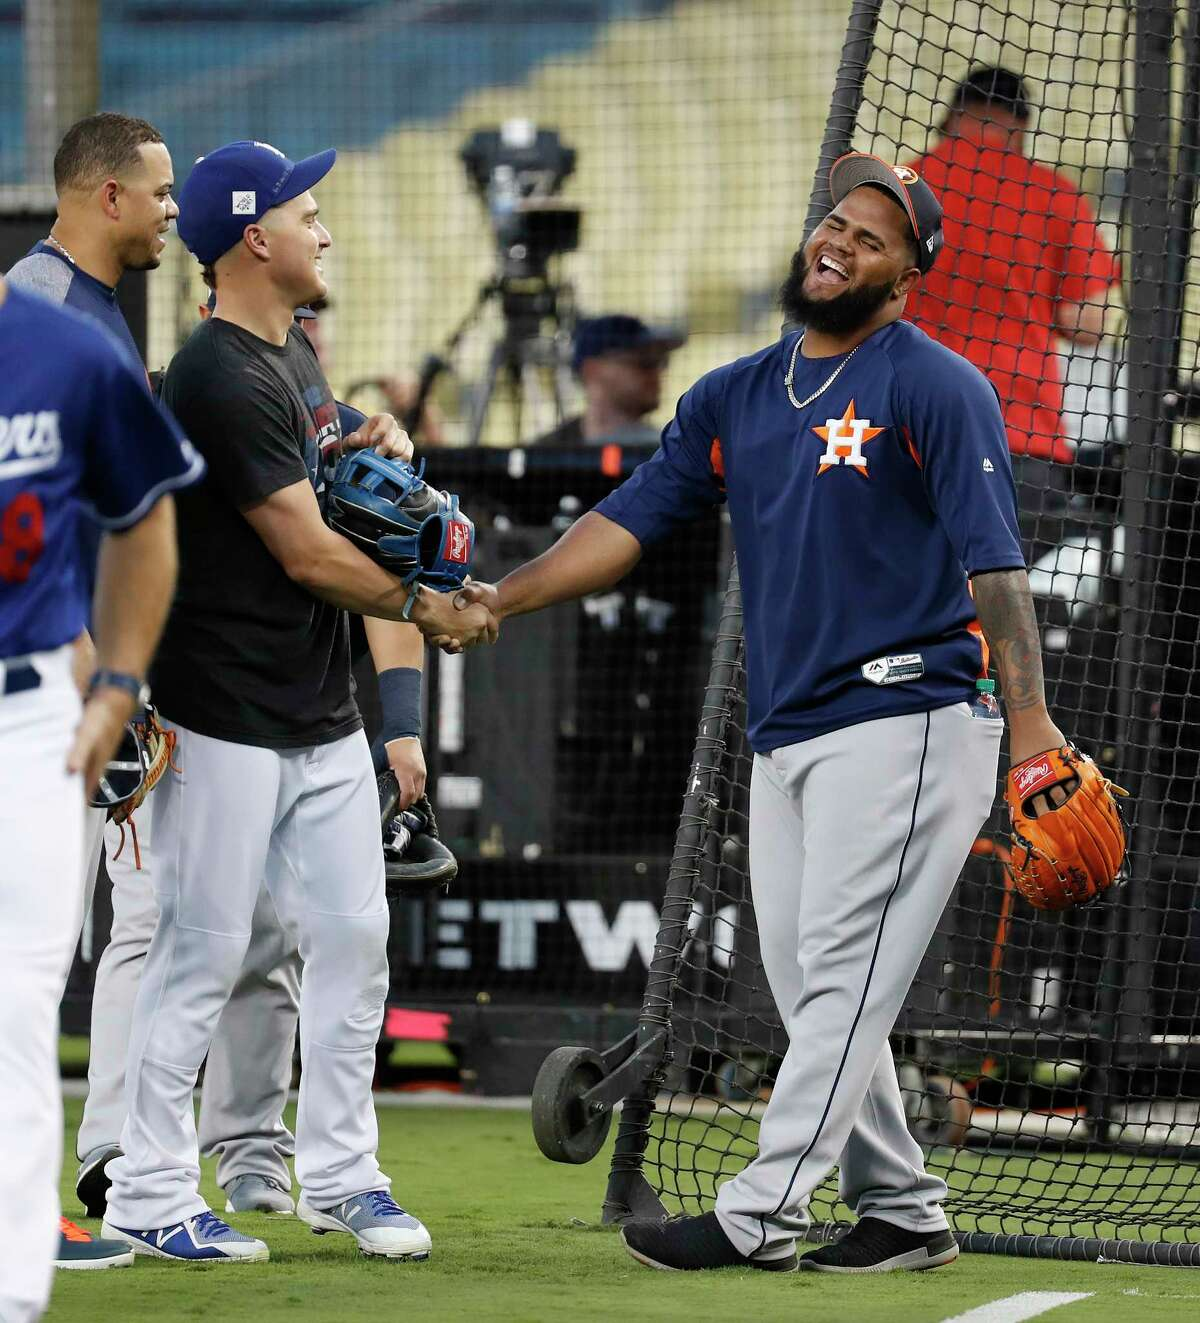 Los Angeles Dodgers center fielder Kike Hernandez laughs with Houston Astros Francis Martes as the Dodgers worked out during the World Series Media Day at Dodger Stadium, Monday, Oct. 23, 2017, in Los Angeles.